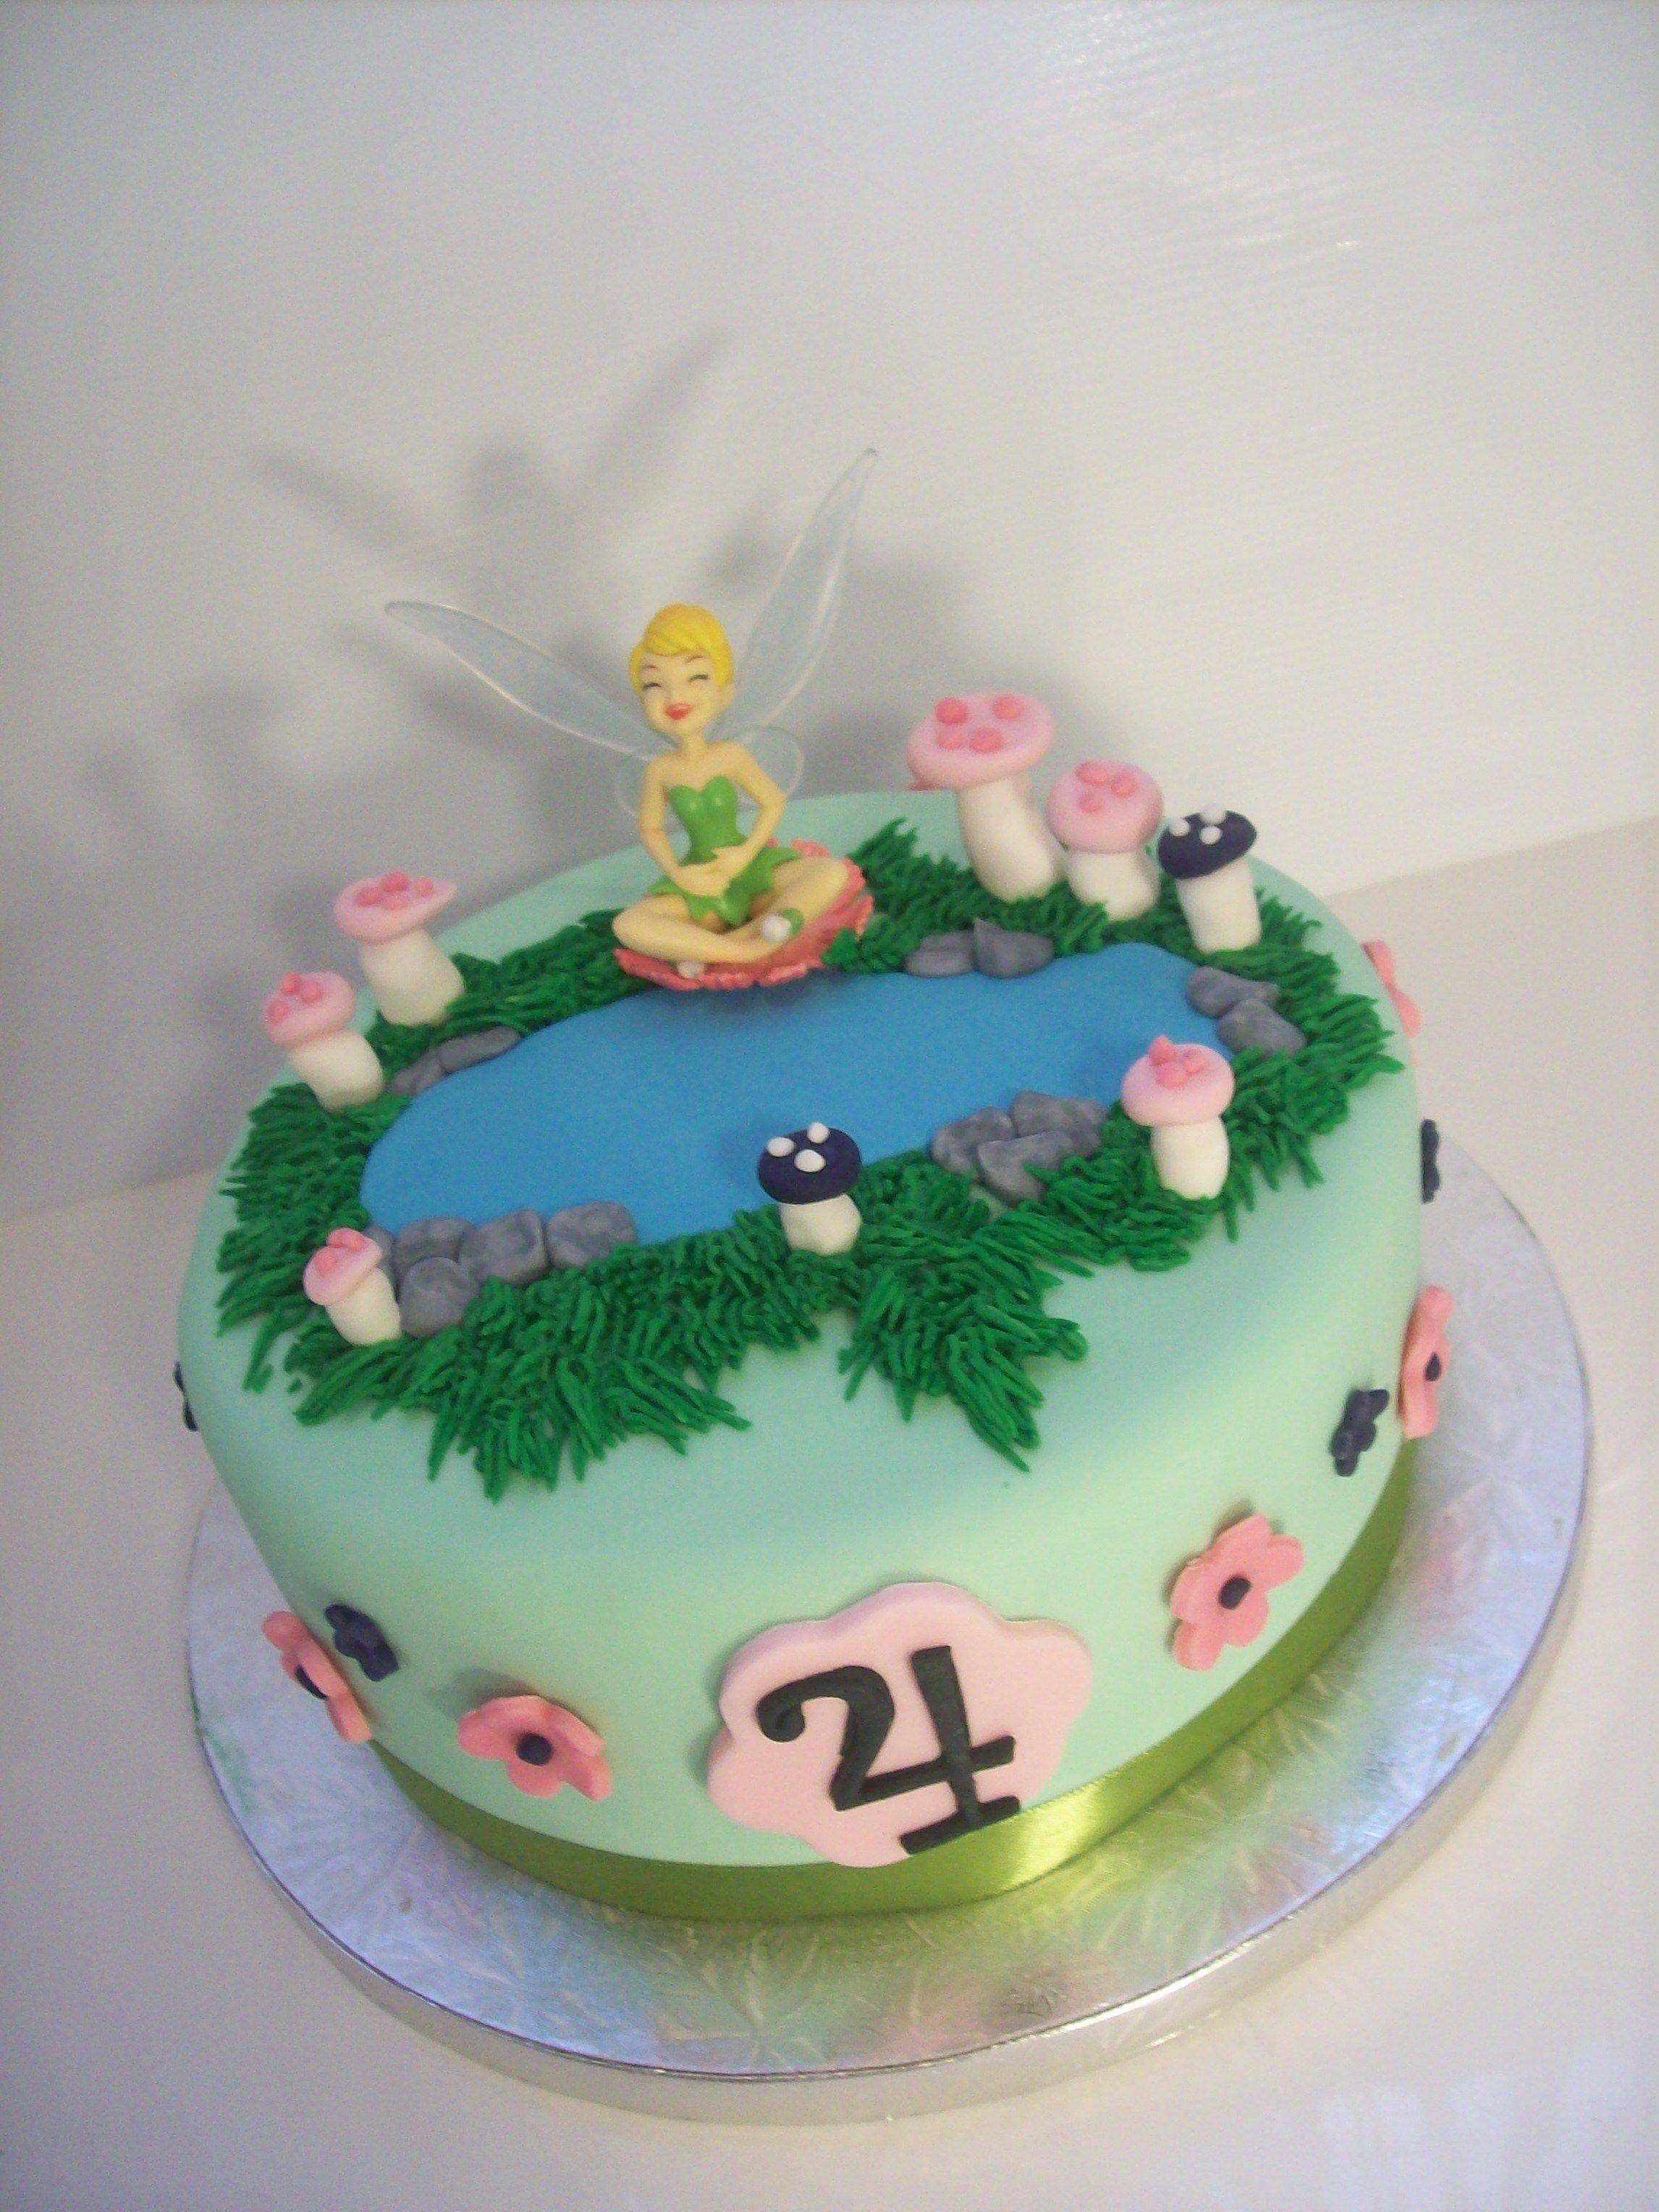 Tinkerbell Cake Auckland 250 10 Inch FREE Delivery Within AKL Figurines Bought From A Licensed Retailer